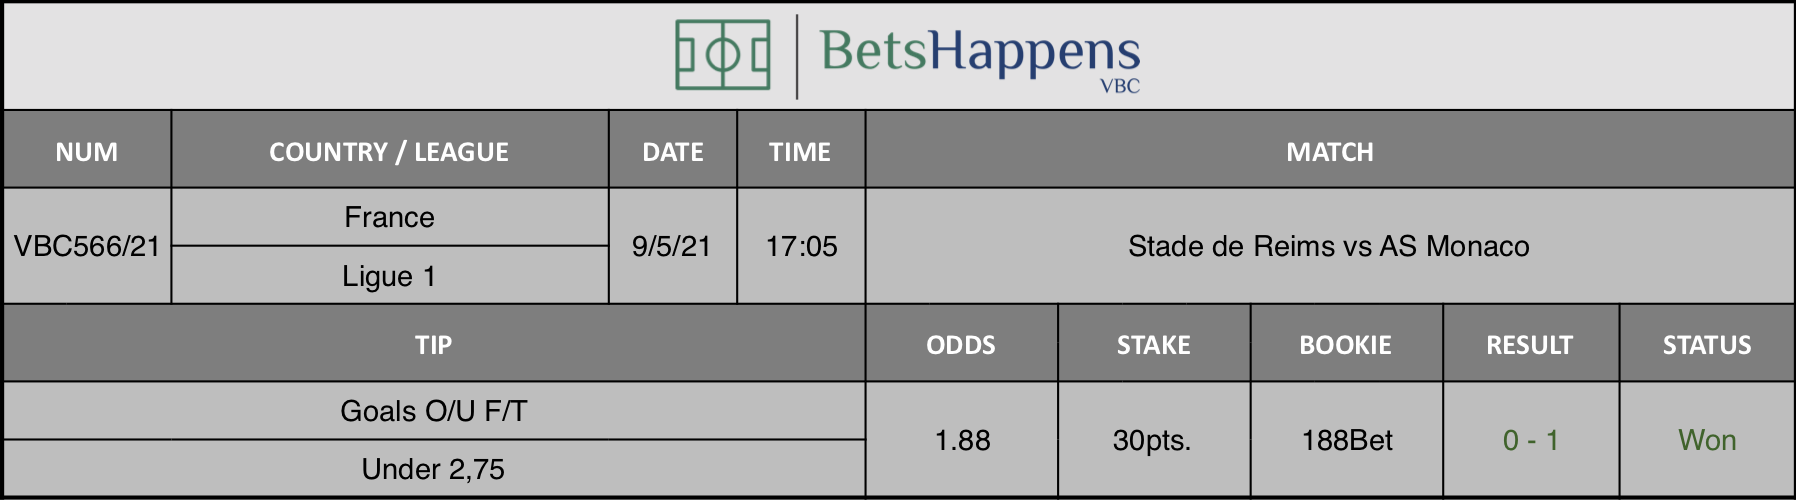 Results of our tip for the Stade de Reims vs AS Monaco match where Goals O/U F/T Under 2,75 is recommended.